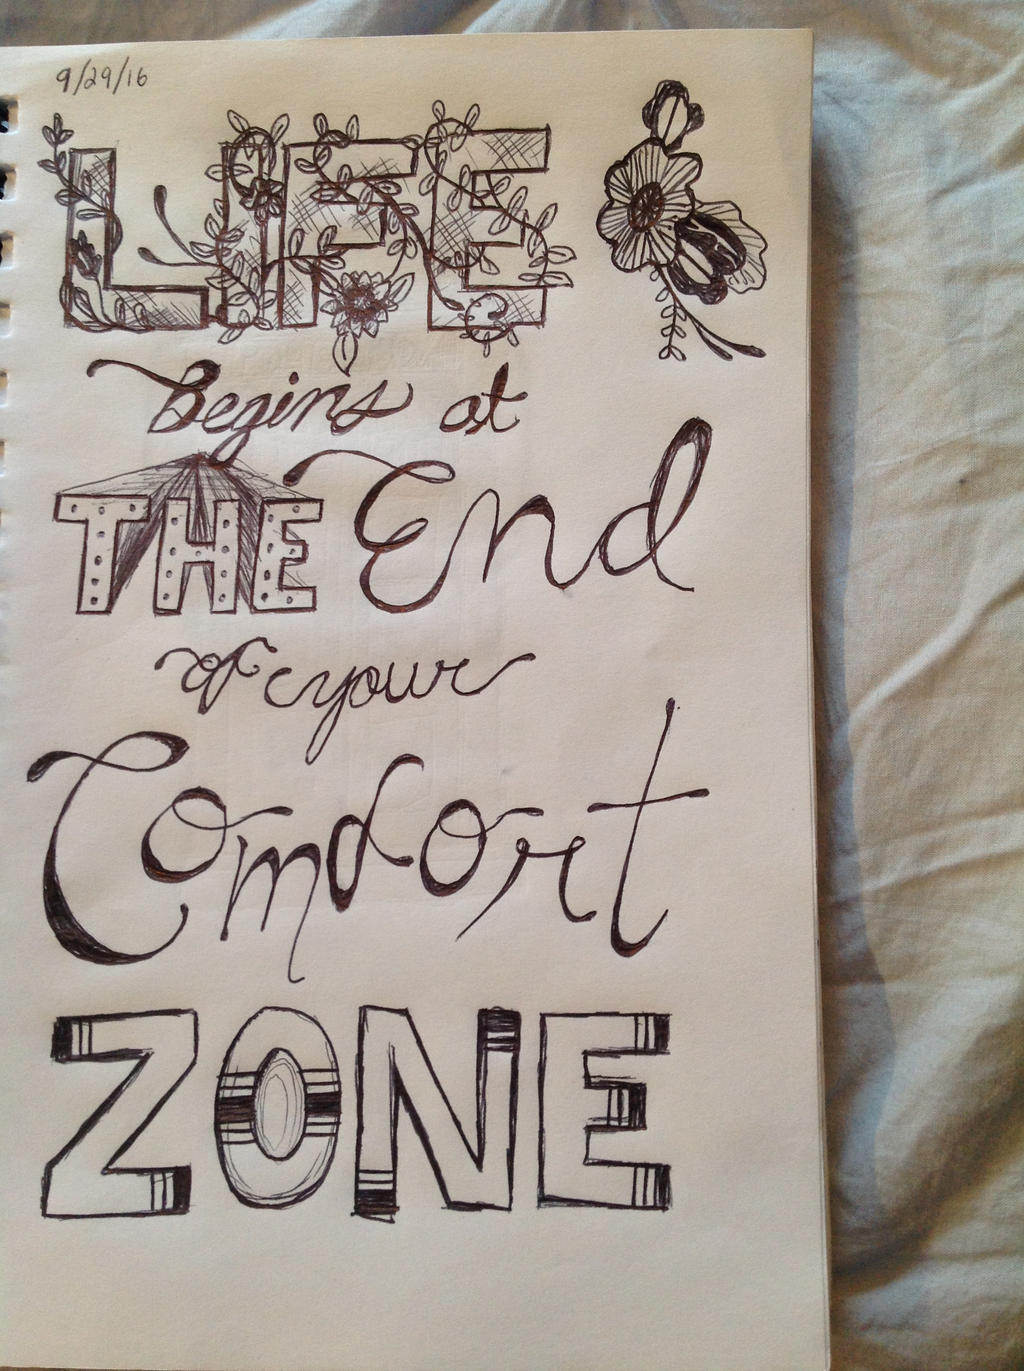 End of Your Comfort Zone by wingedmusician